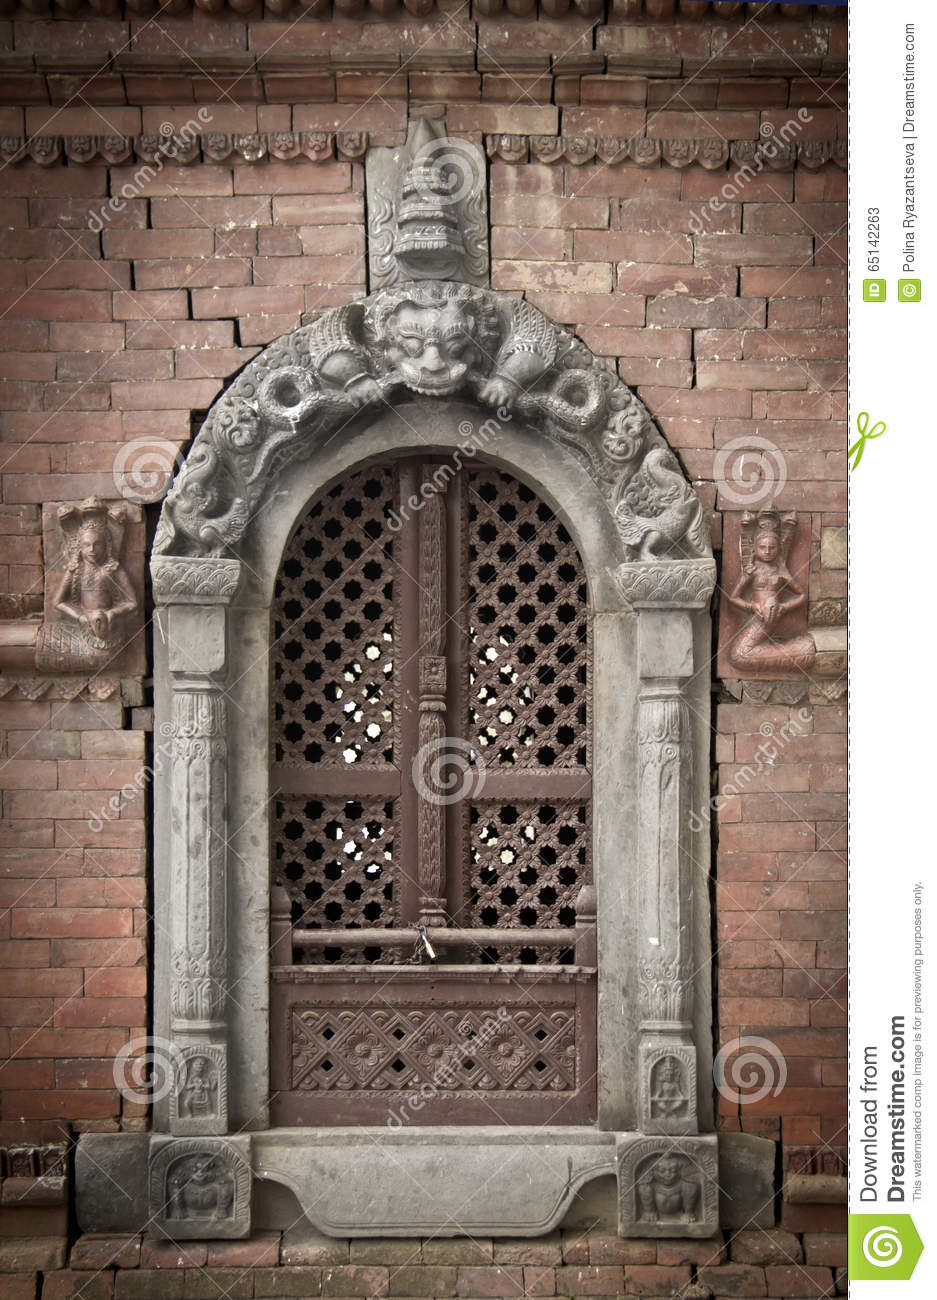 Ancient window in kathmandu stock photo image 65142263 for Window design in nepal